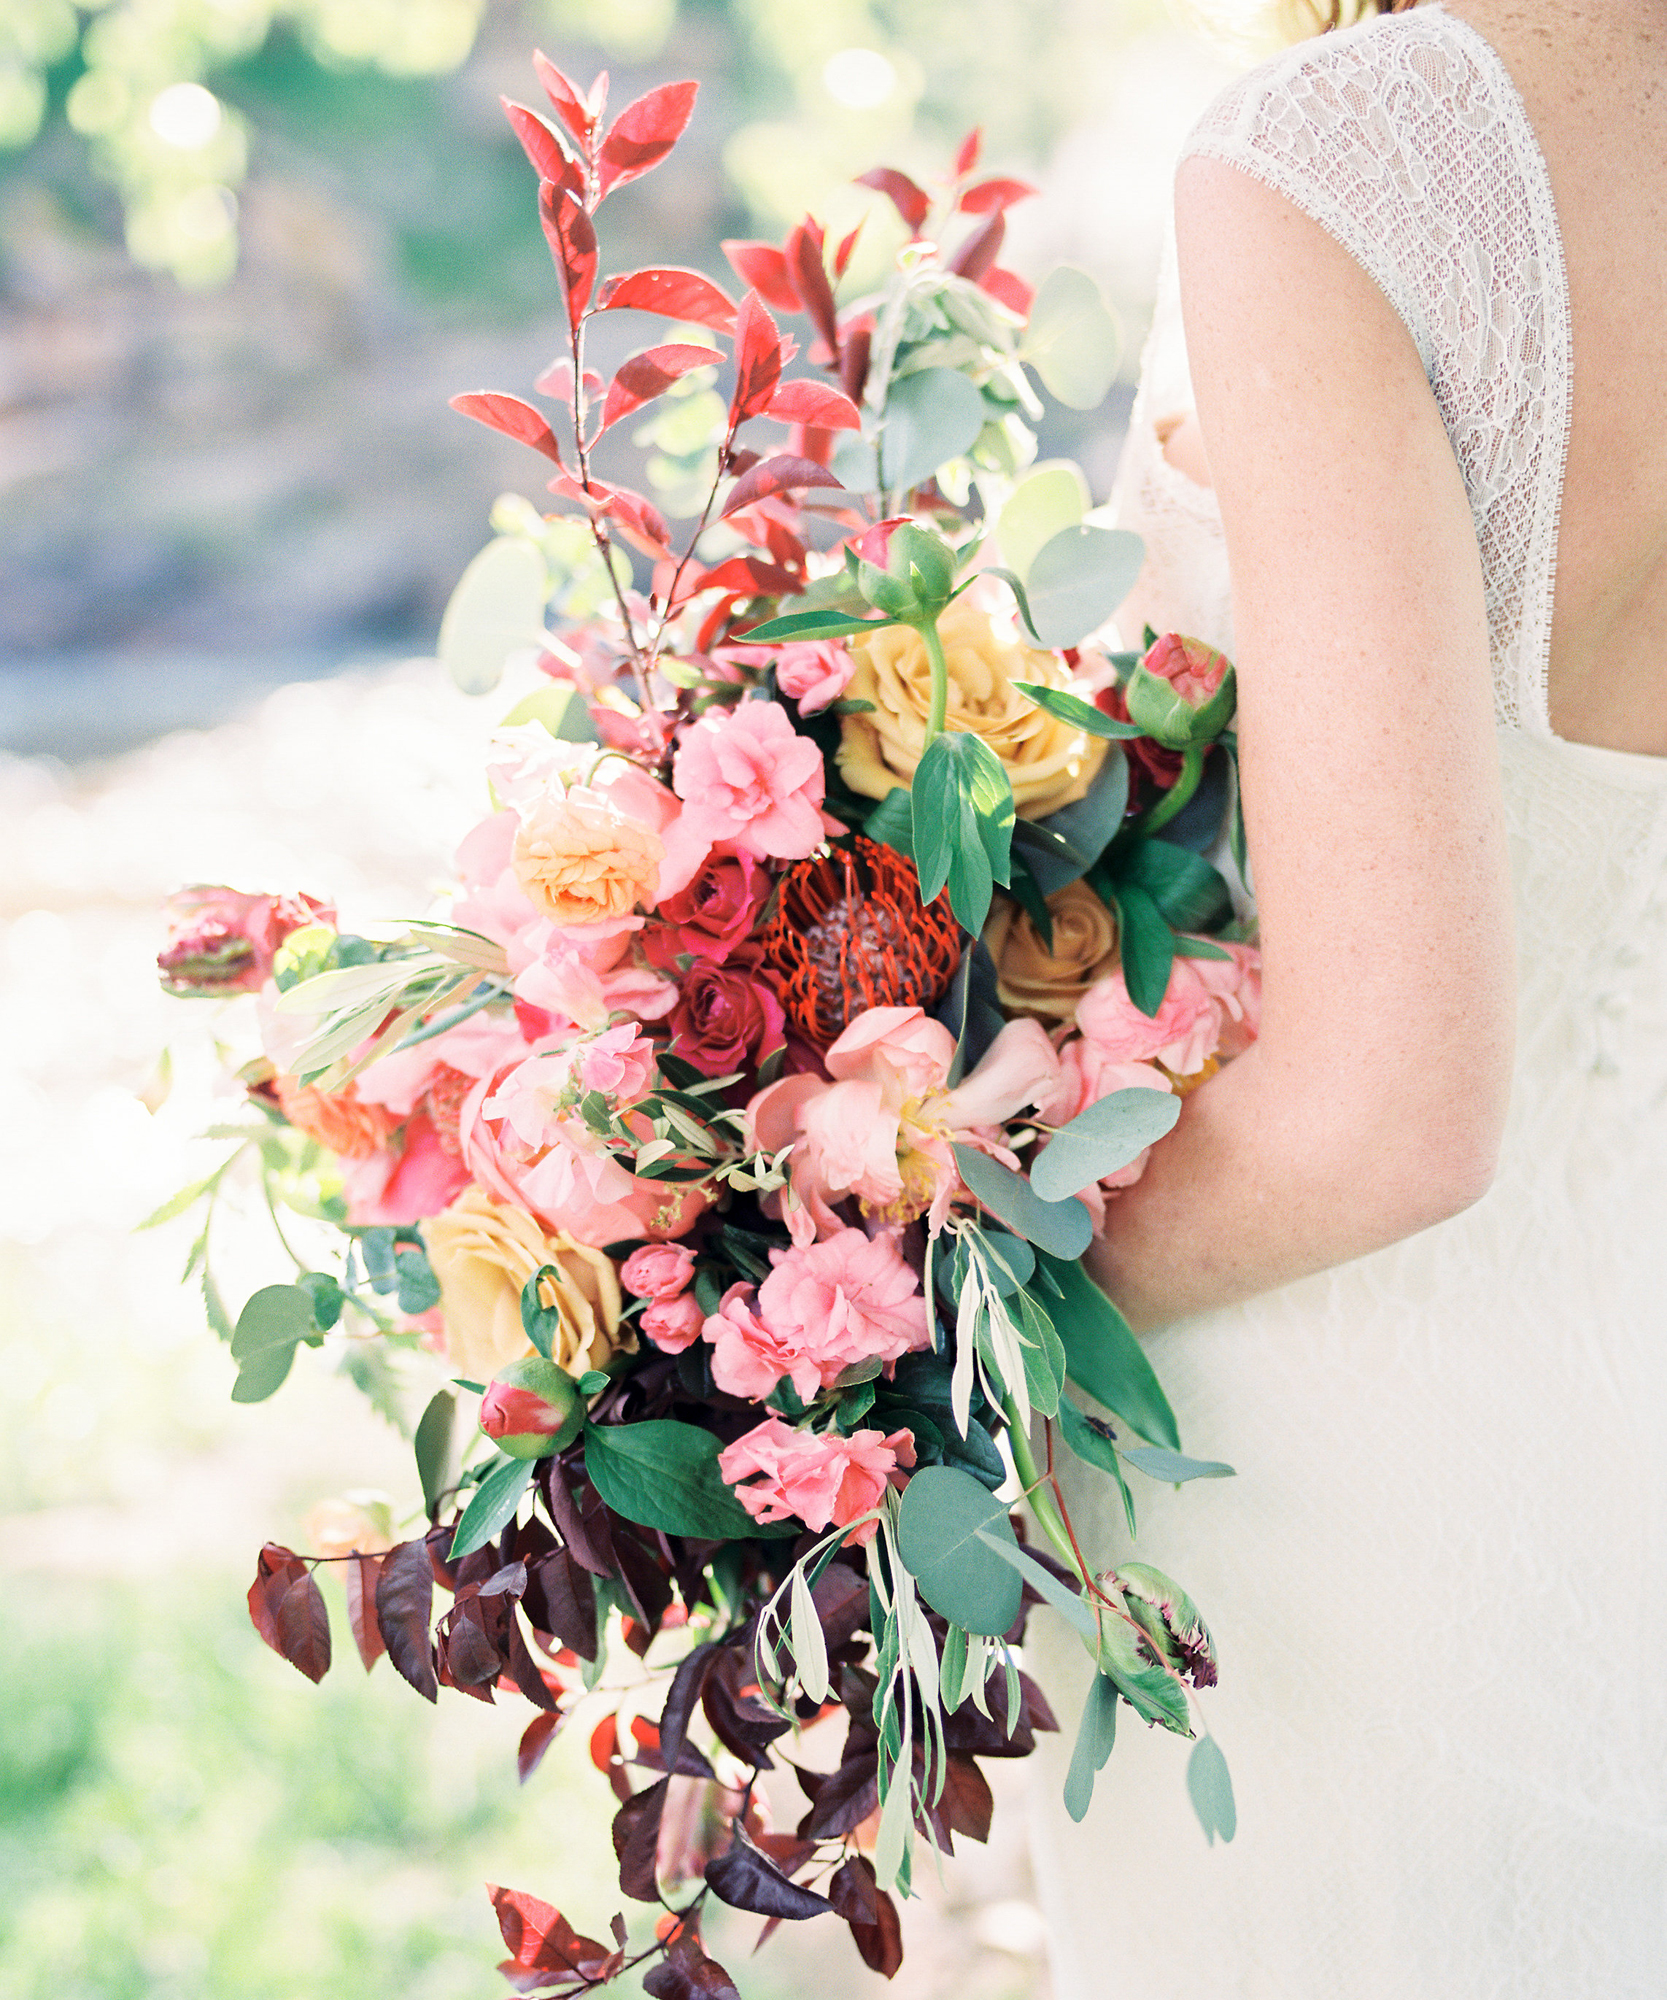 11 Floral Trends to Consider for Your Spring Wedding